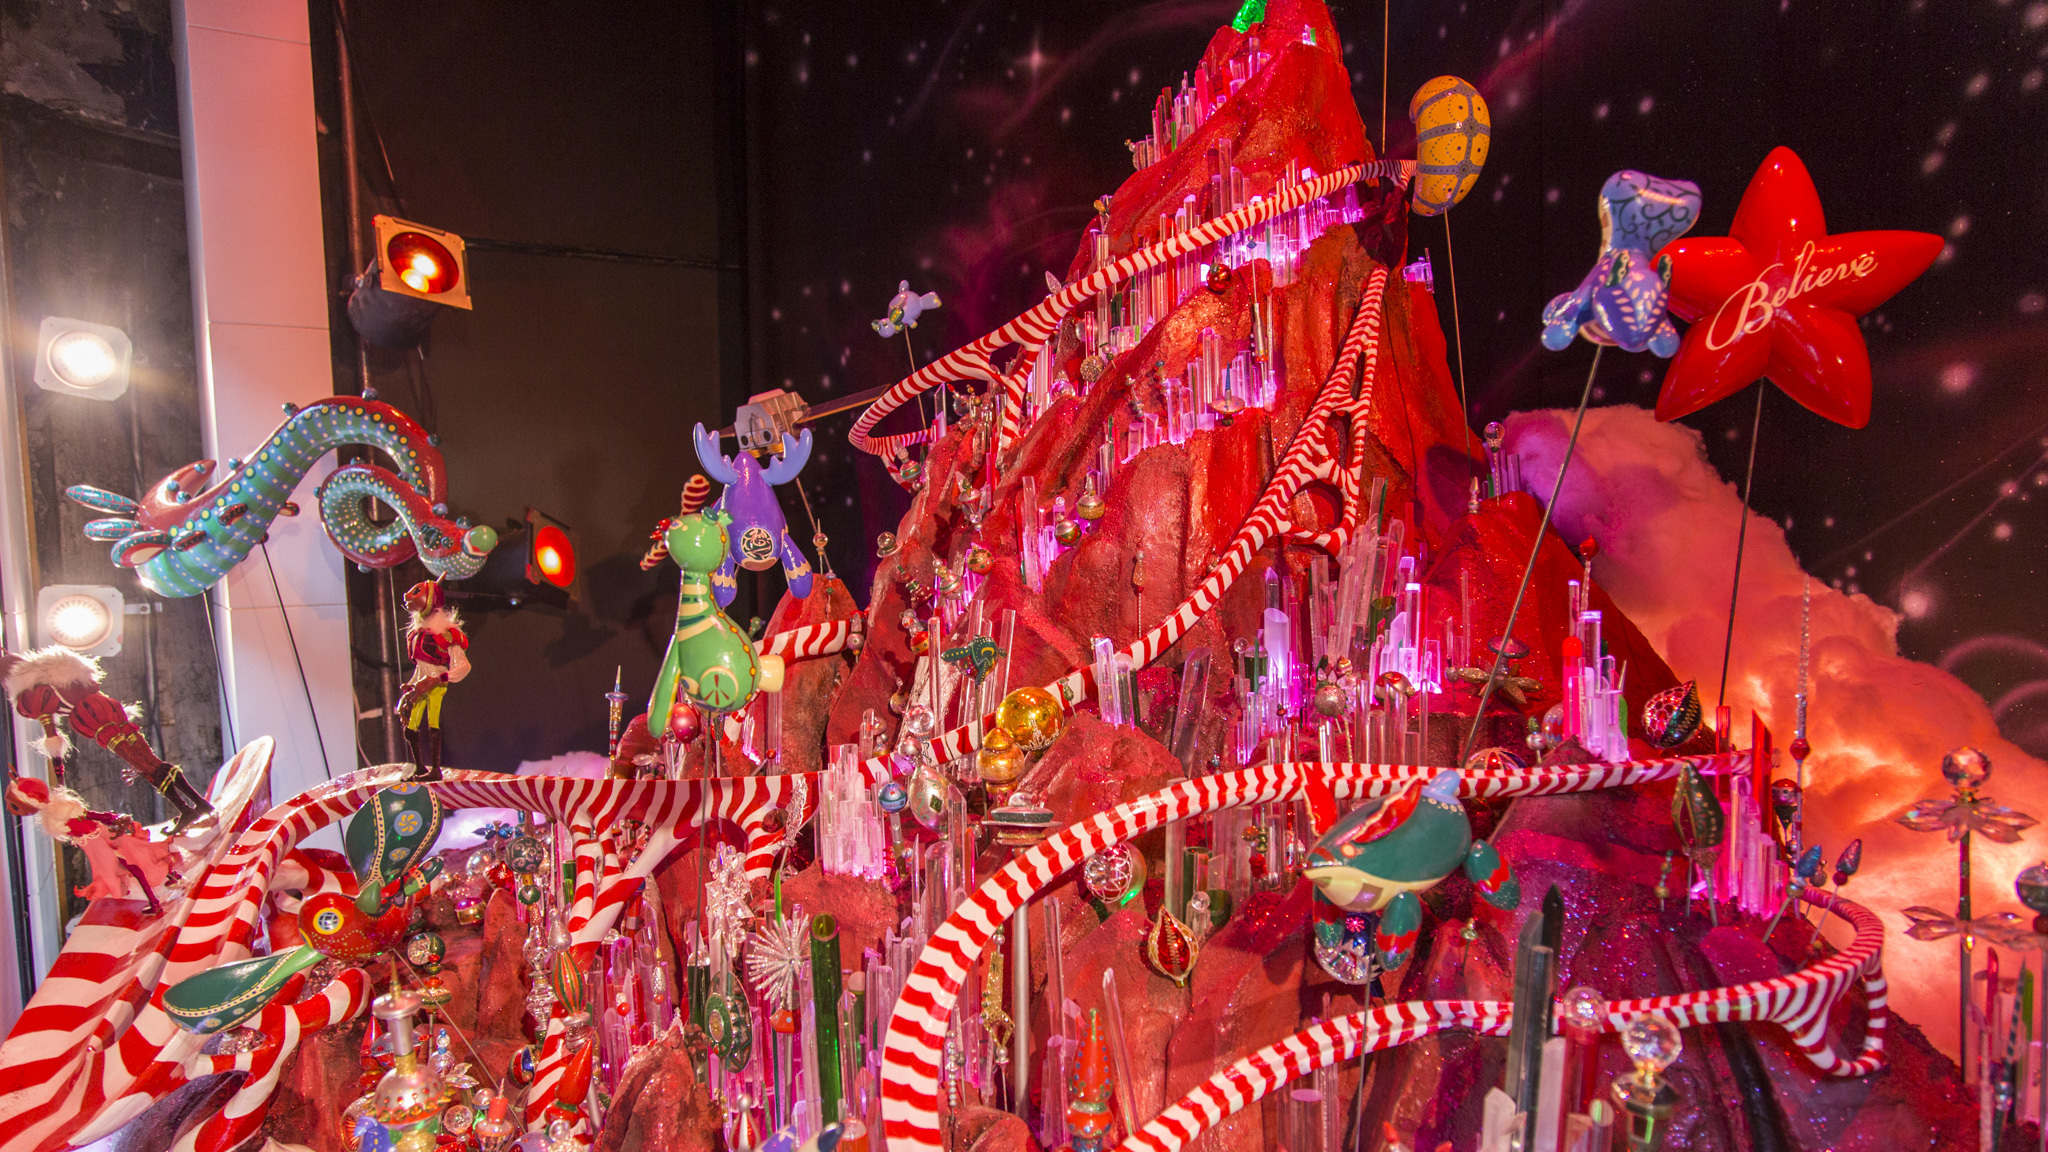 Macy's State Street prepares its holiday windows and decor